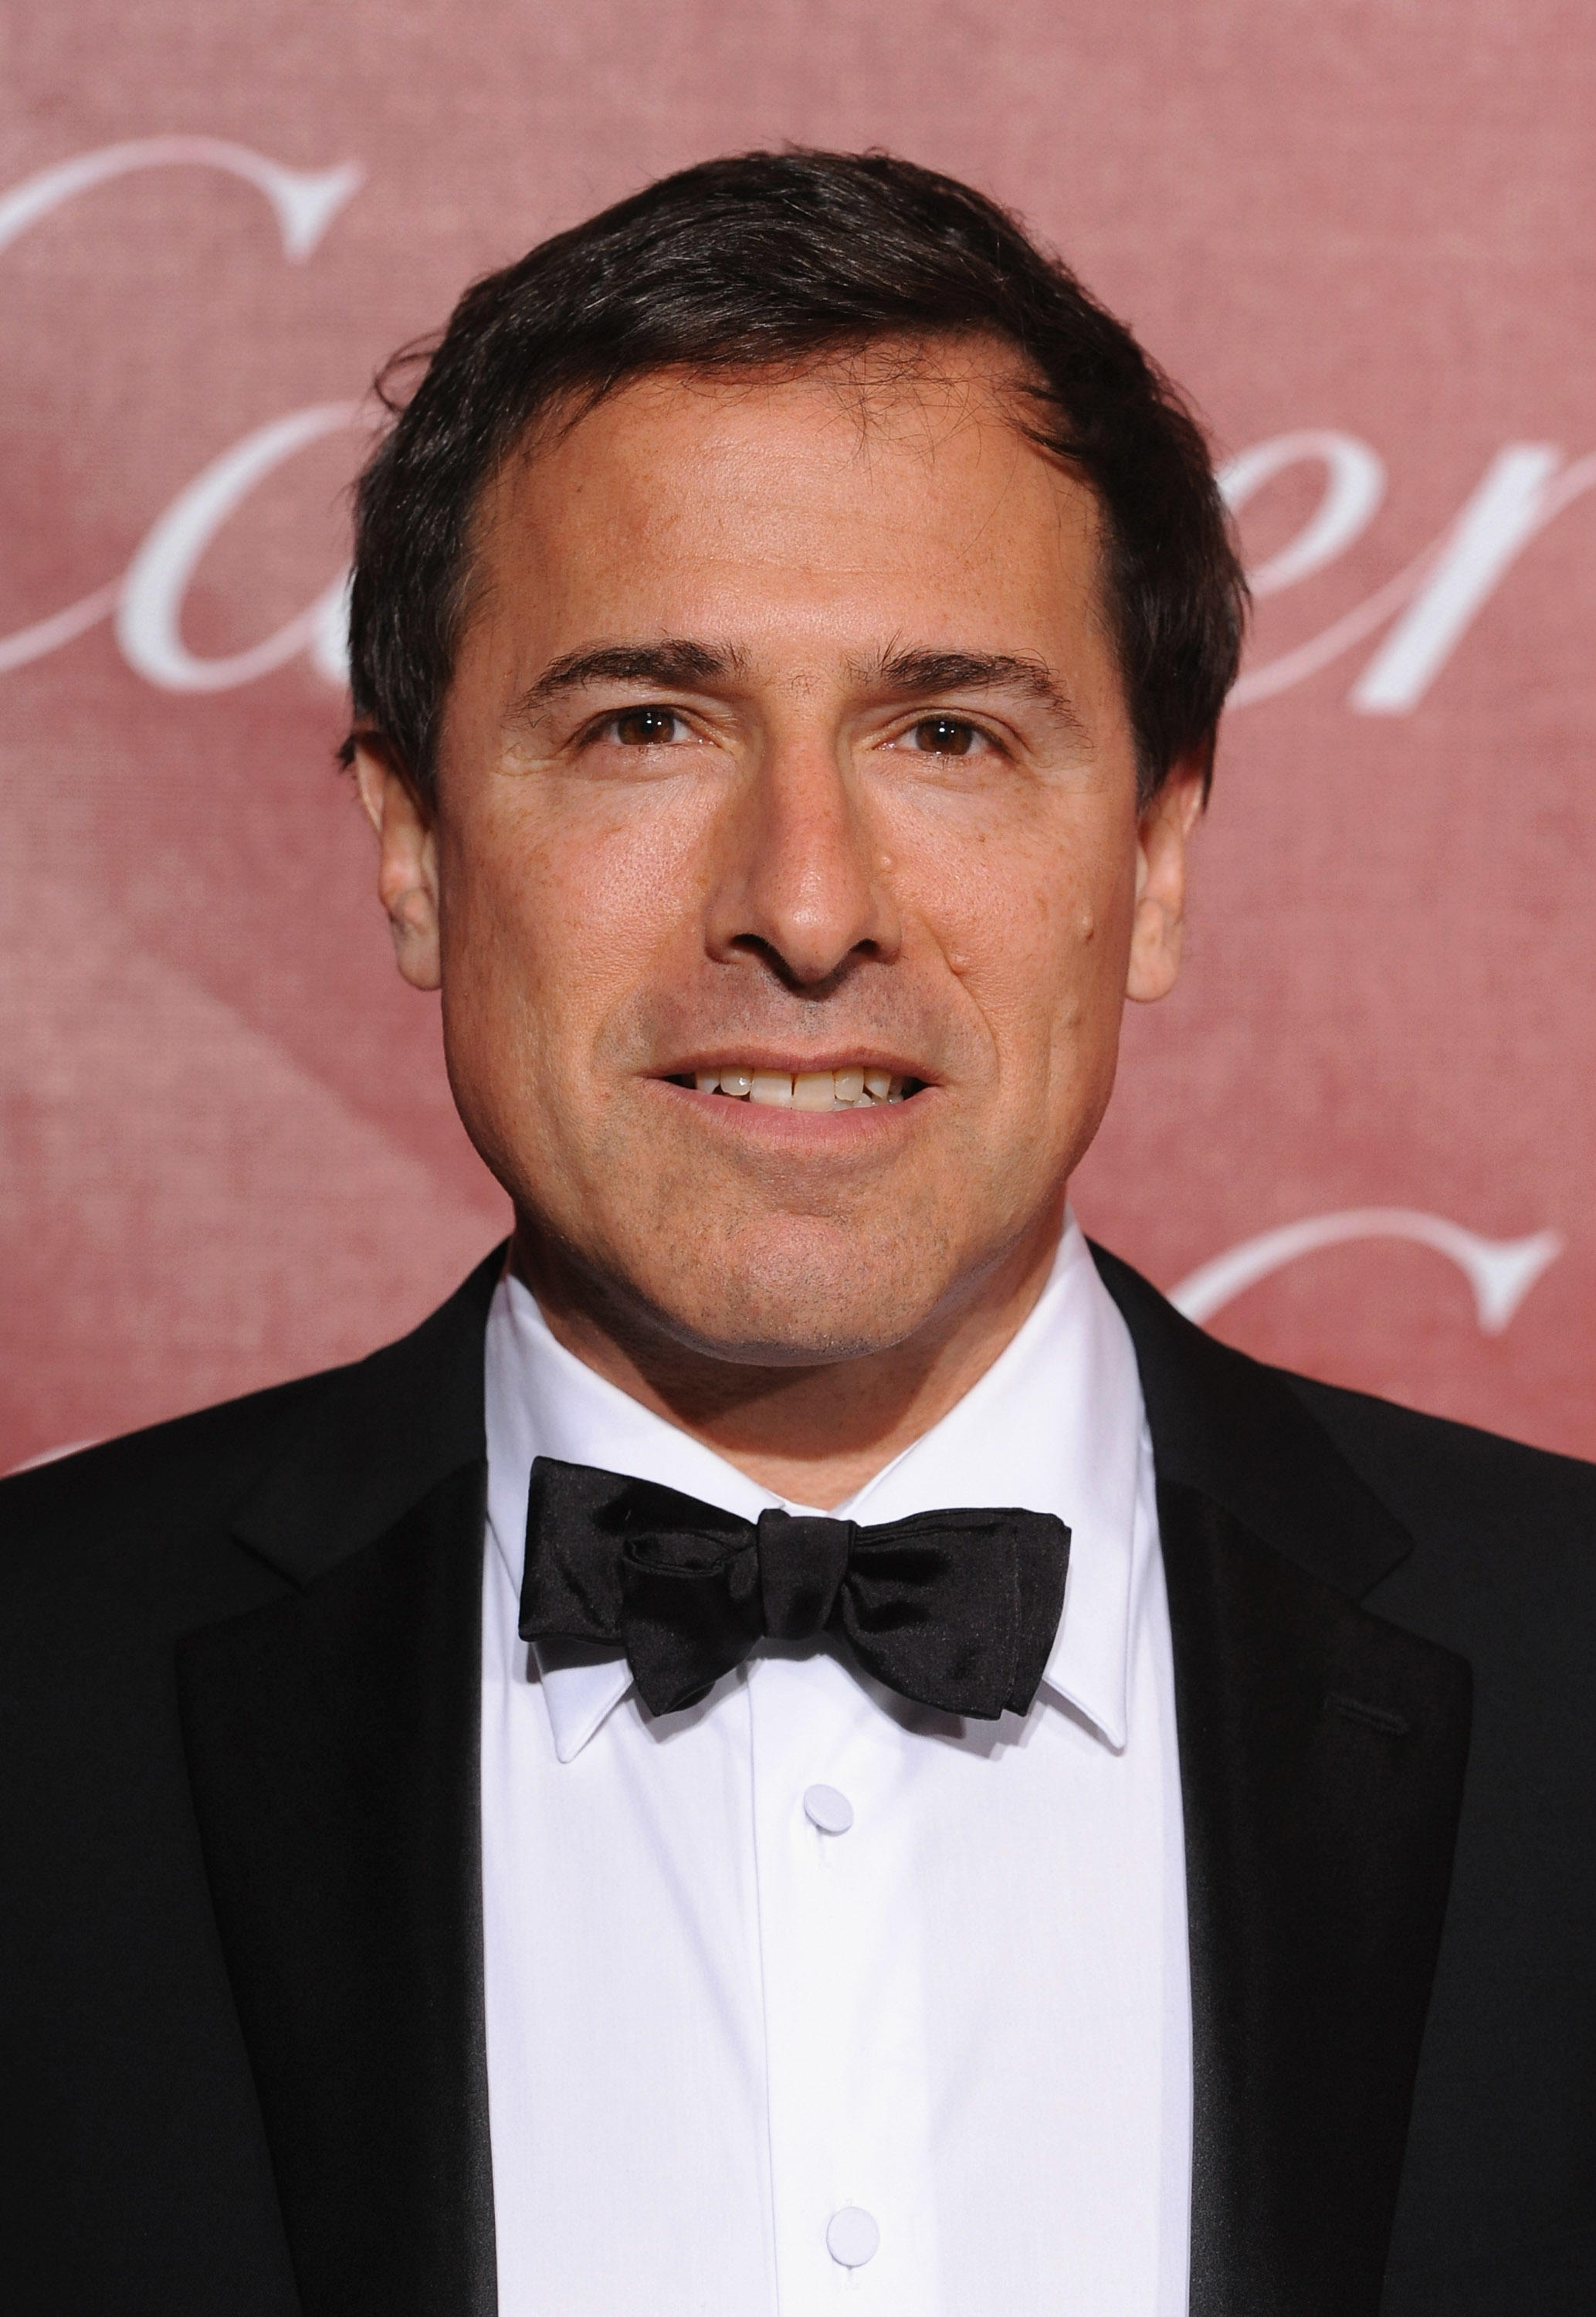 David O. Russell at the 2011 Palm Springs International Film Festival.